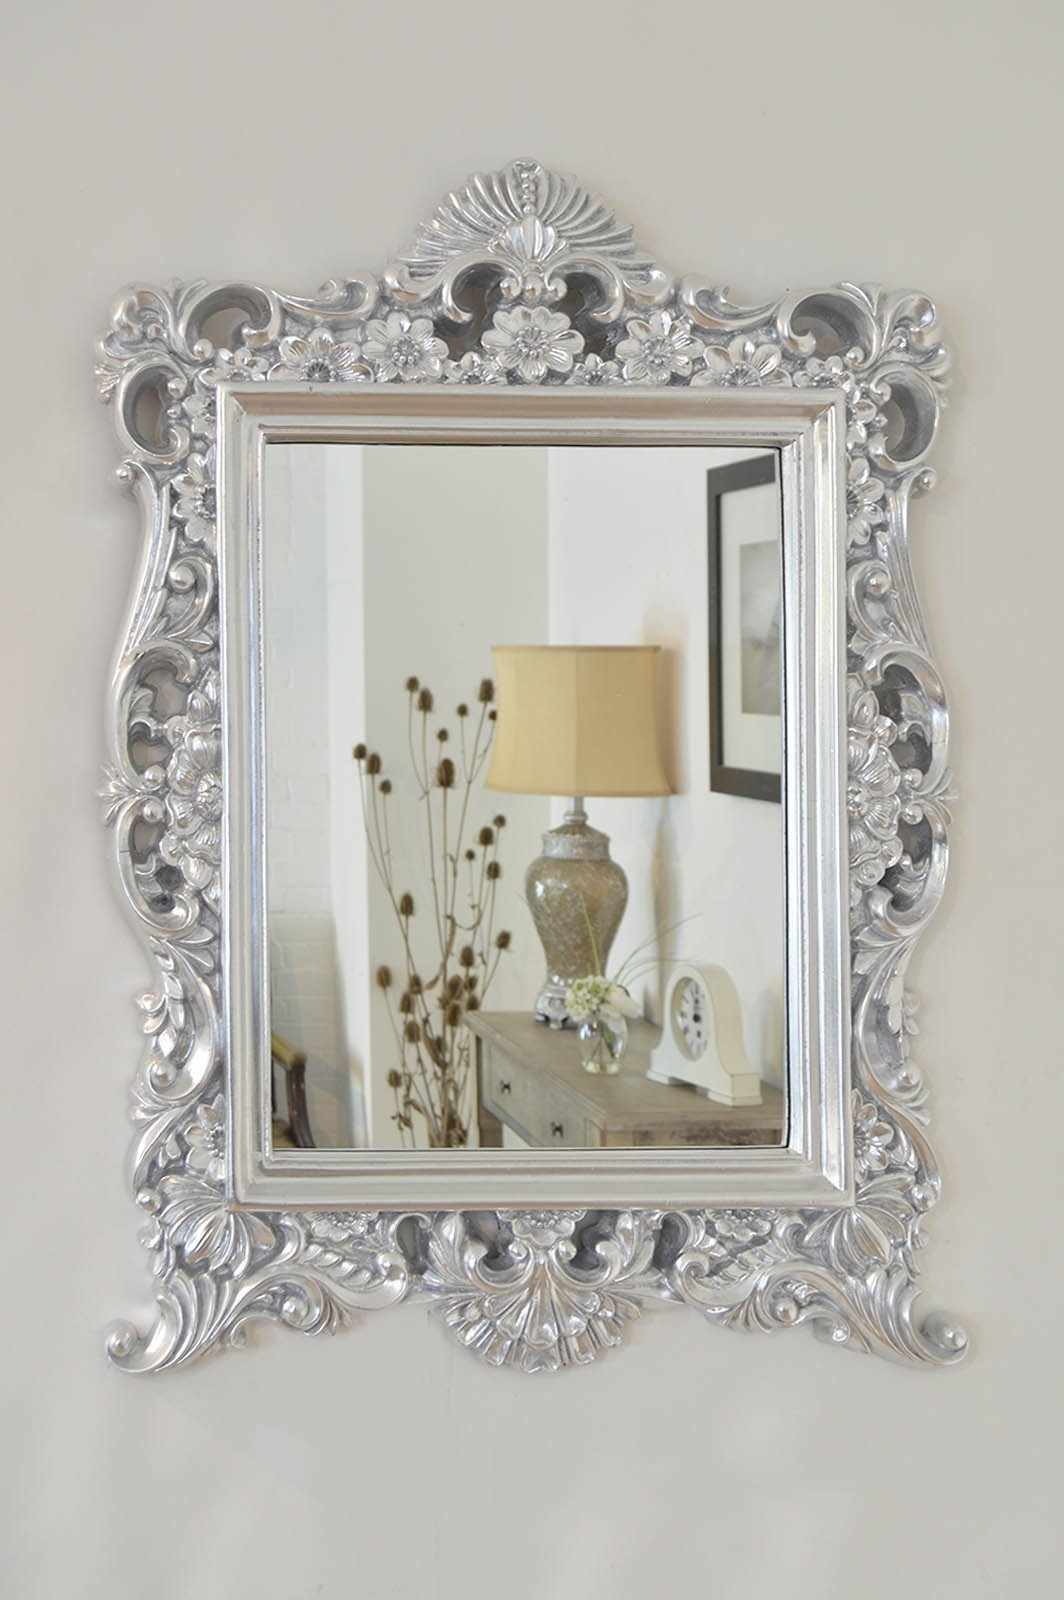 Large Silver Baroque Style Portrait Ornate Wall Mirror 2ft9 X 2ft1 With Large Ornate Wall Mirrors (View 11 of 15)